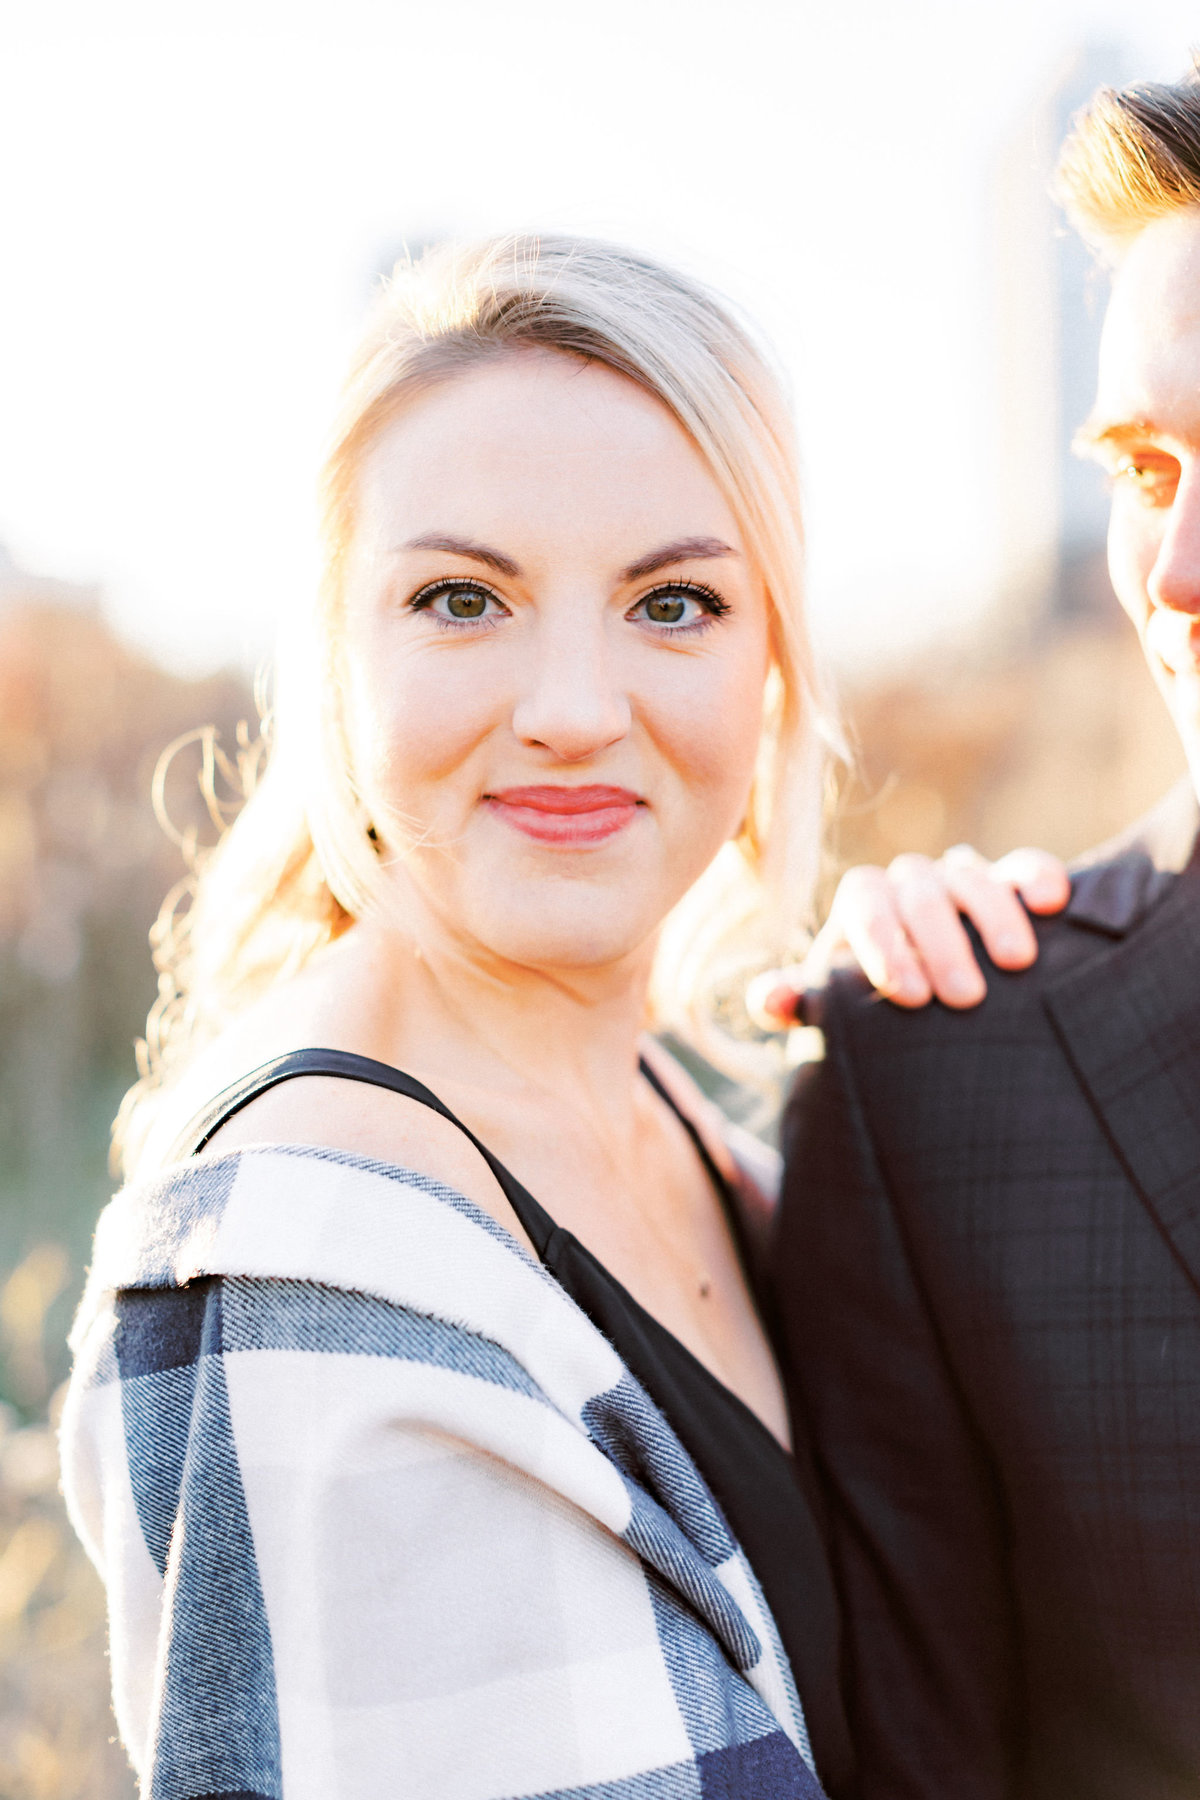 TiffaneyChildsPhotography-ChicagoWeddingPhotographer-AnneMarie+Connor-LincolnParkNatureBoardwalkEngagementSession-43